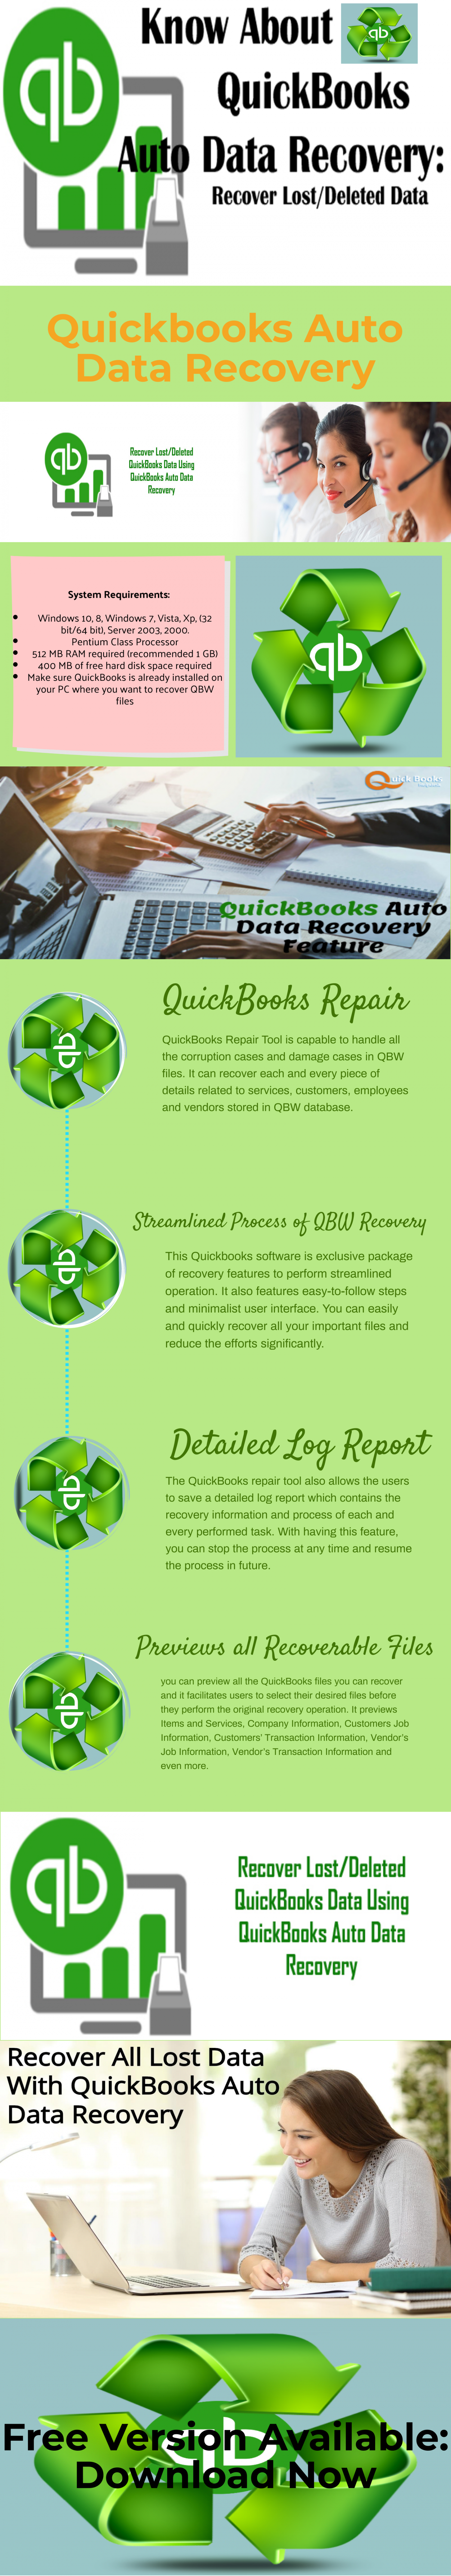 How to Recover Quickbooks Errors With Quickbooks Data Recovery Software Infographic